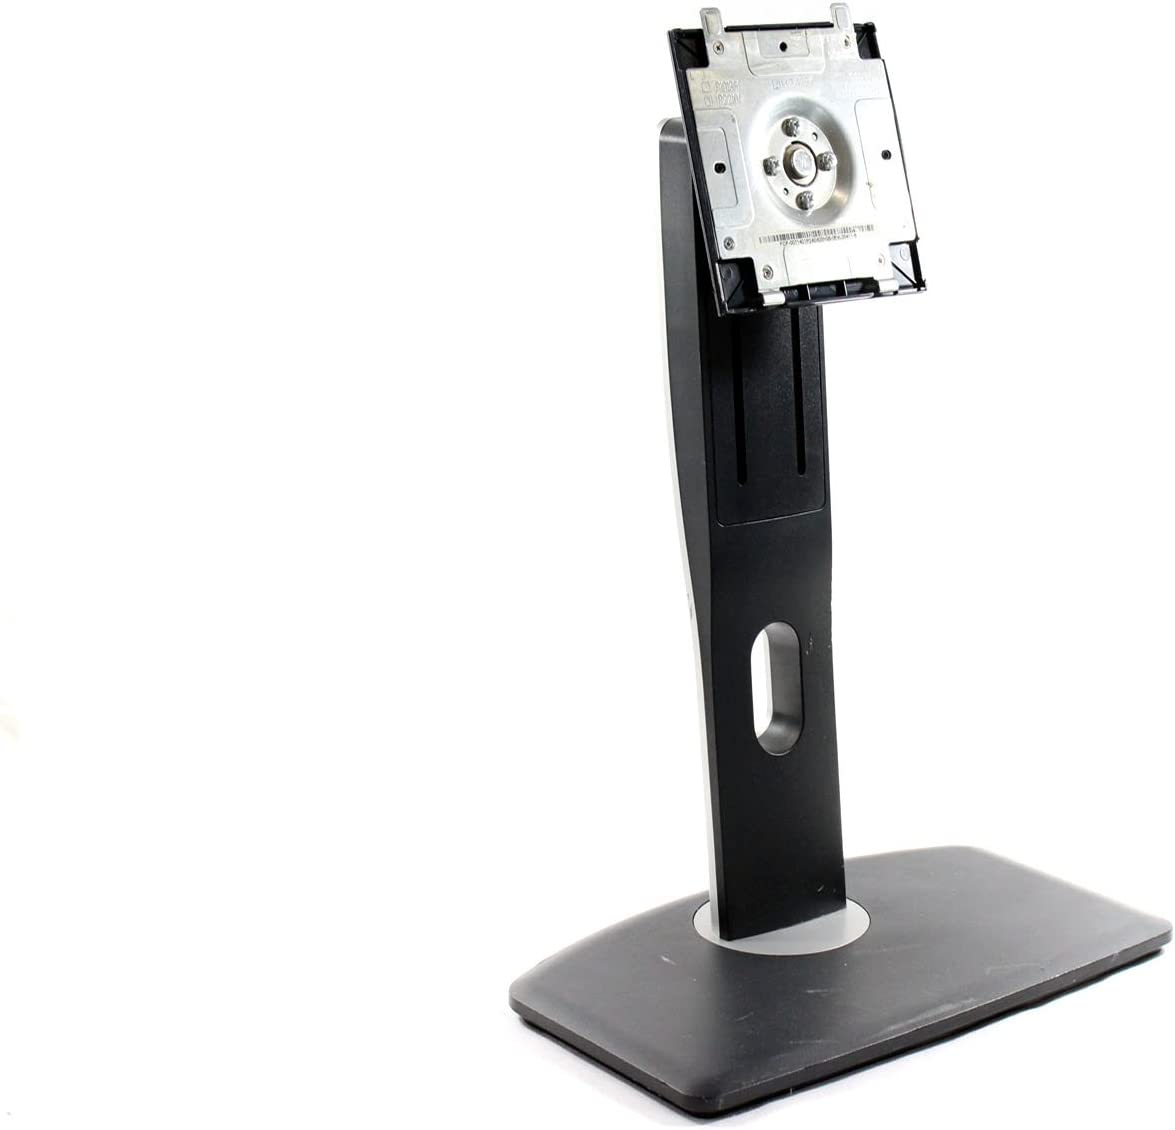 Dell Monitor LCD Monitor Stand with tilt Swivel Pivot and Height adjustments P2213f P2212Hf P1913Sf P2210f U2413f